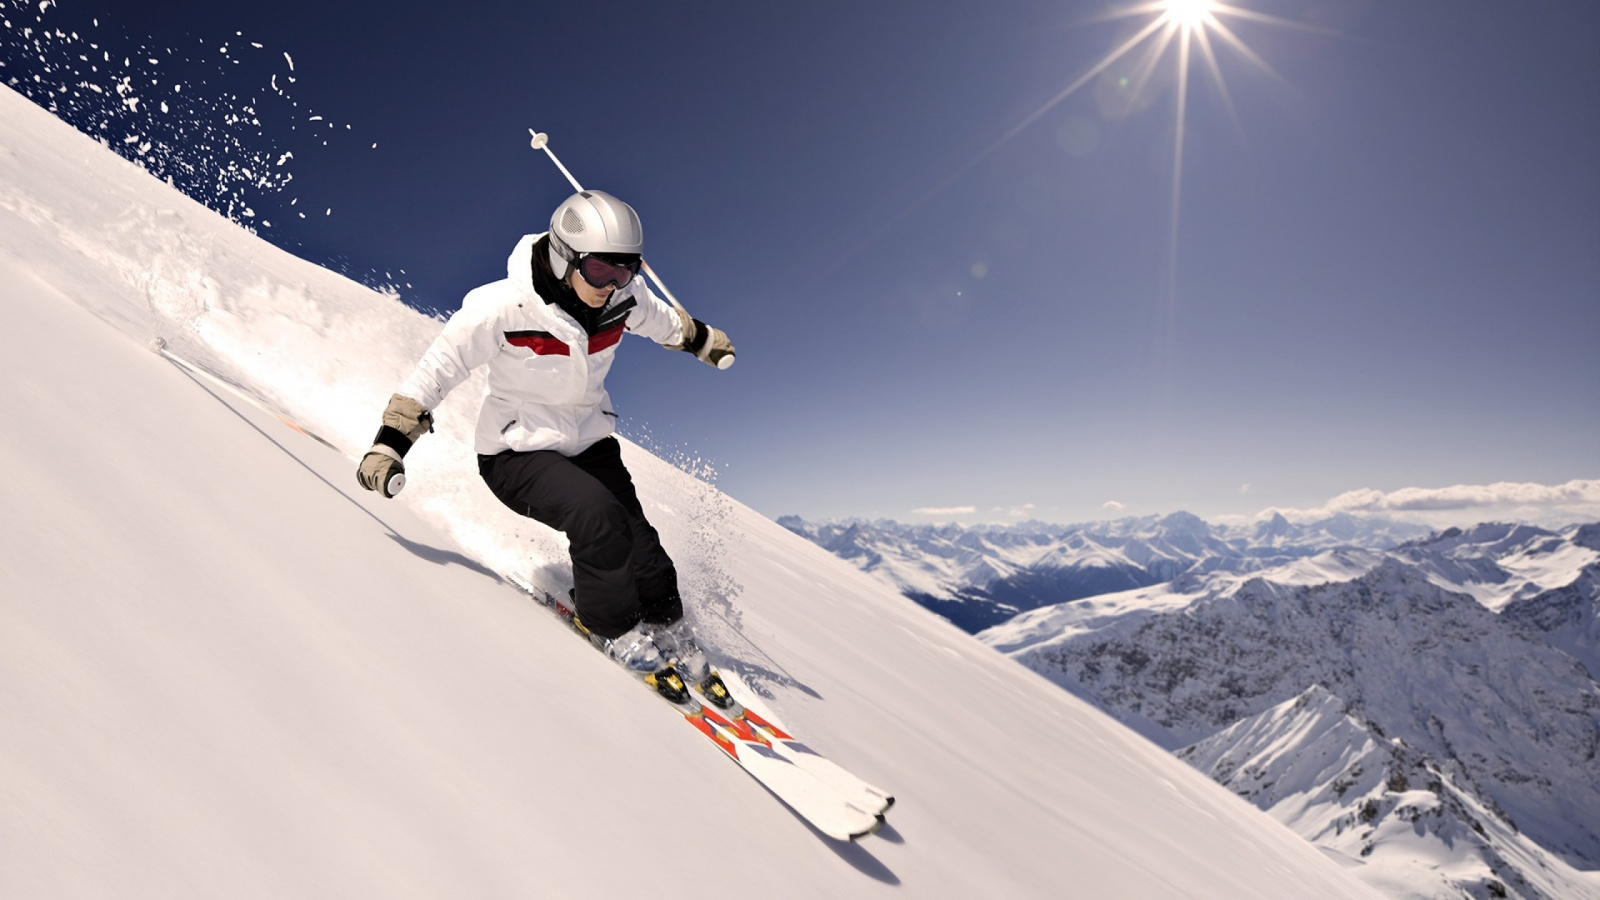 Downhill skier wallpapers